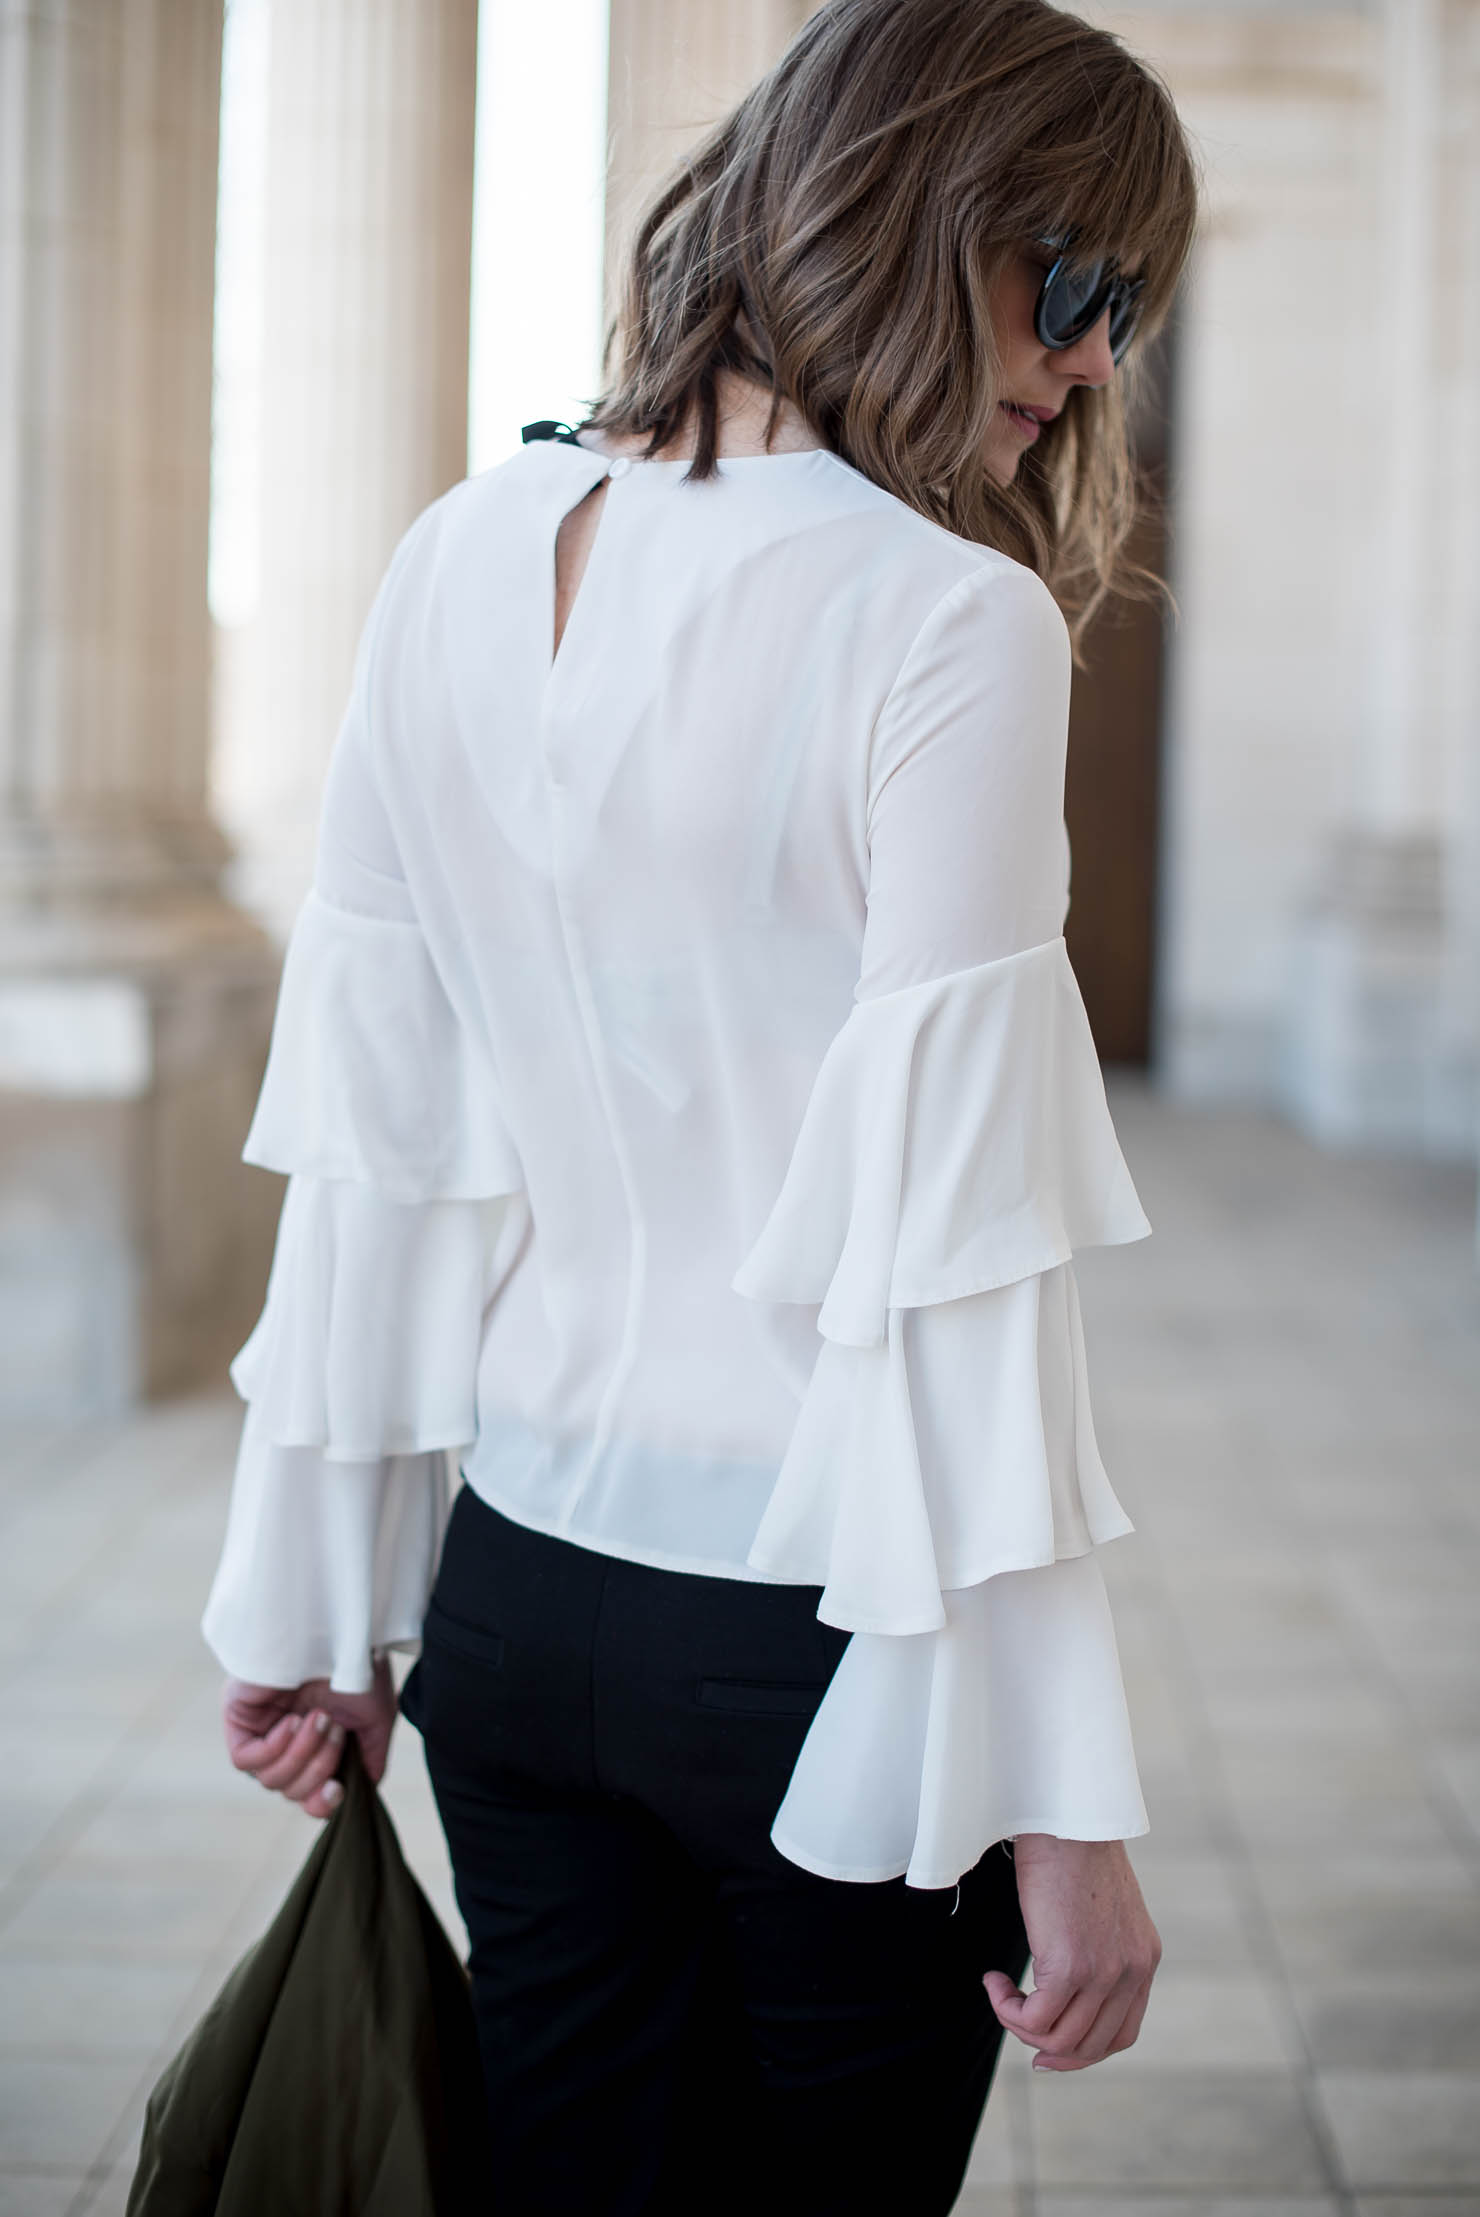 d77621171c89f stying-a-ruffle-sleeve-blouse -springs-hottest-trend-bomber-jacket-spring-fashion-2017-zara-snakeskin-pumps-19